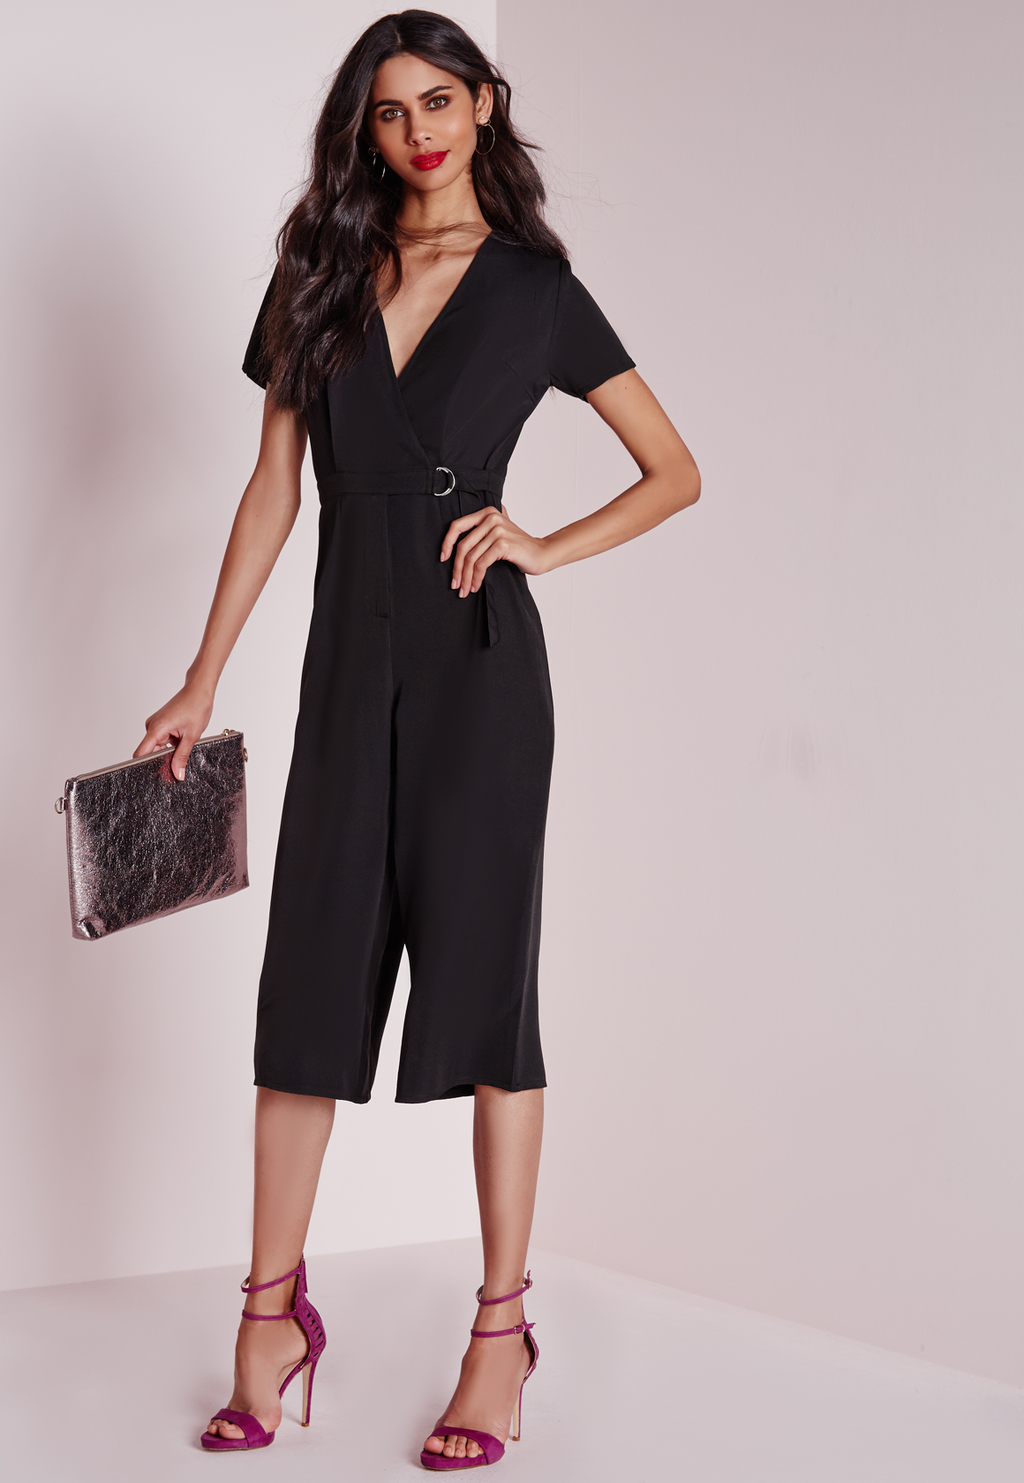 D Ring Wrap Culotte Jumpsuit Black, Black - neckline: v-neck; fit: tailored/fitted; pattern: plain; length: below the knee; predominant colour: black; occasions: evening, occasion; fibres: polyester/polyamide - stretch; sleeve length: short sleeve; sleeve style: standard; style: jumpsuit; pattern type: fabric; texture group: other - light to midweight; season: a/w 2015